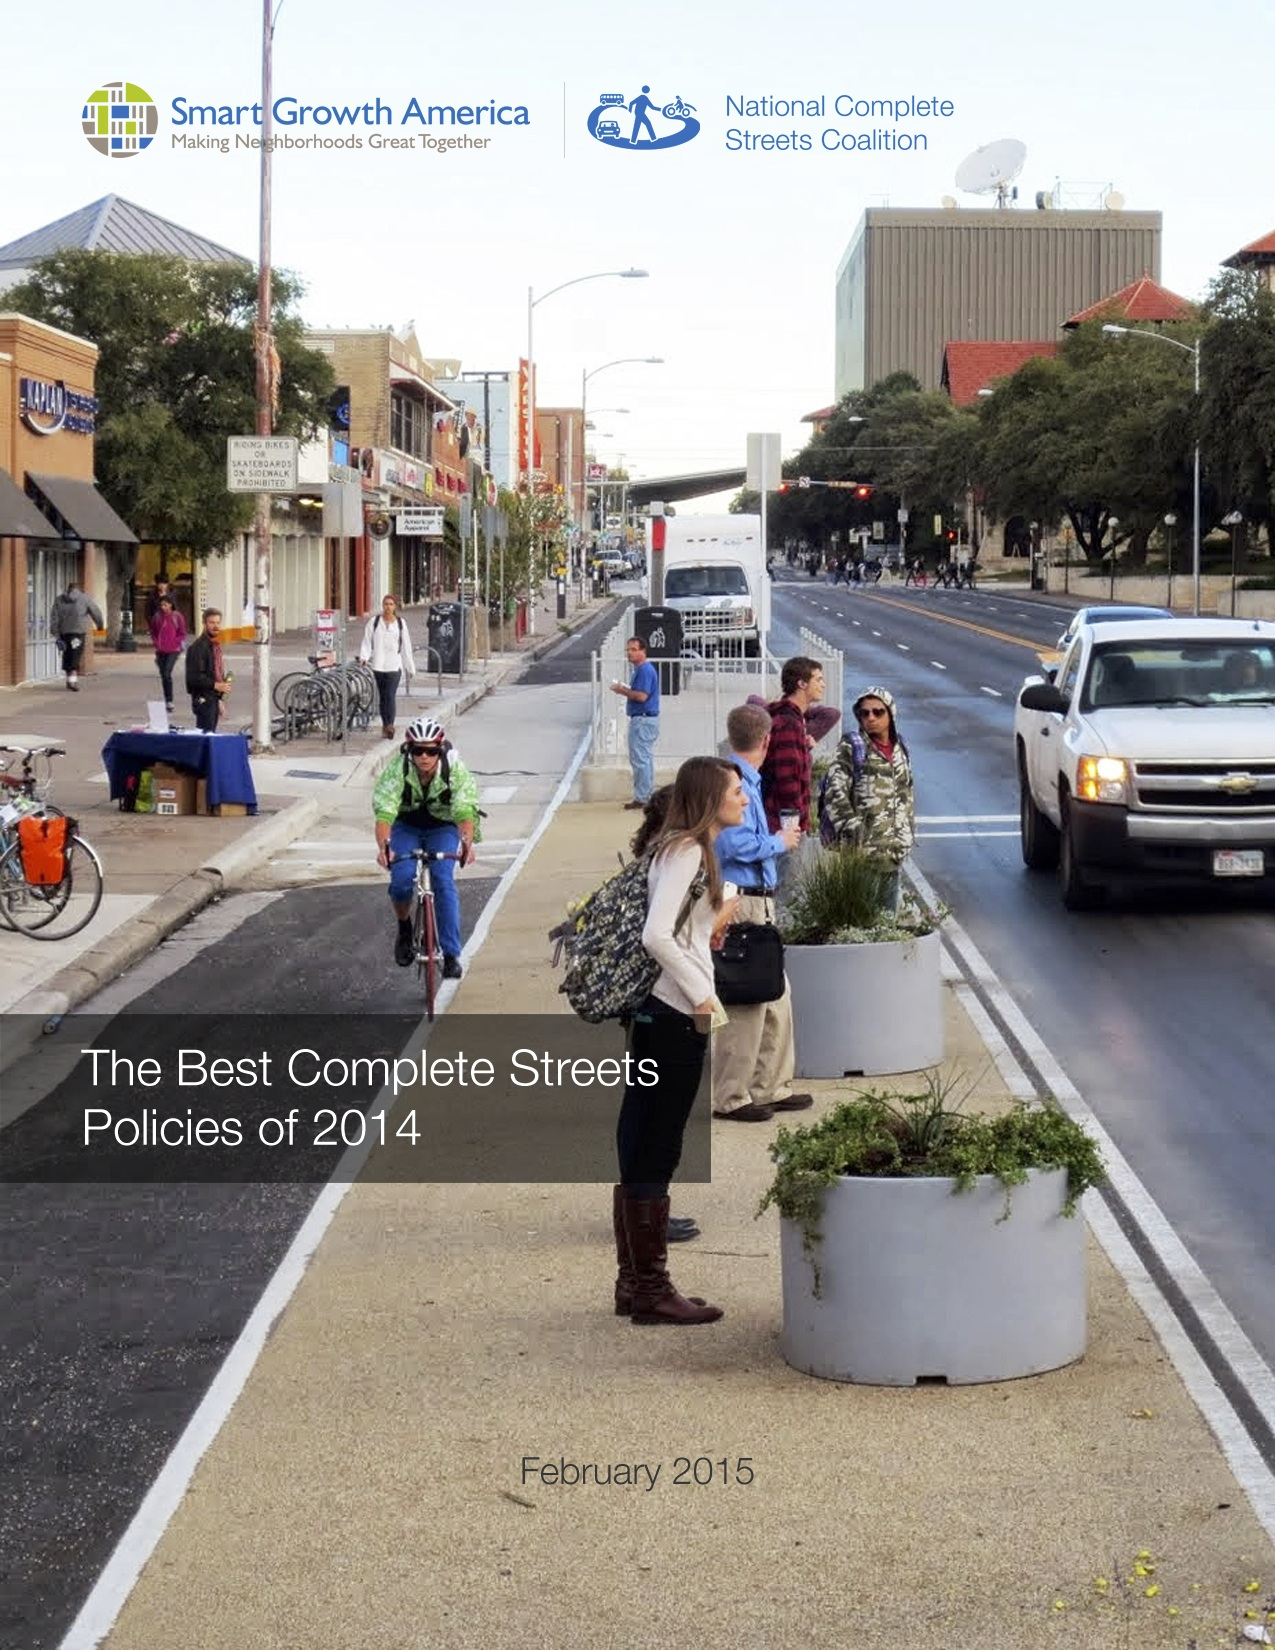 The Best Complete Streets Policies of 2014